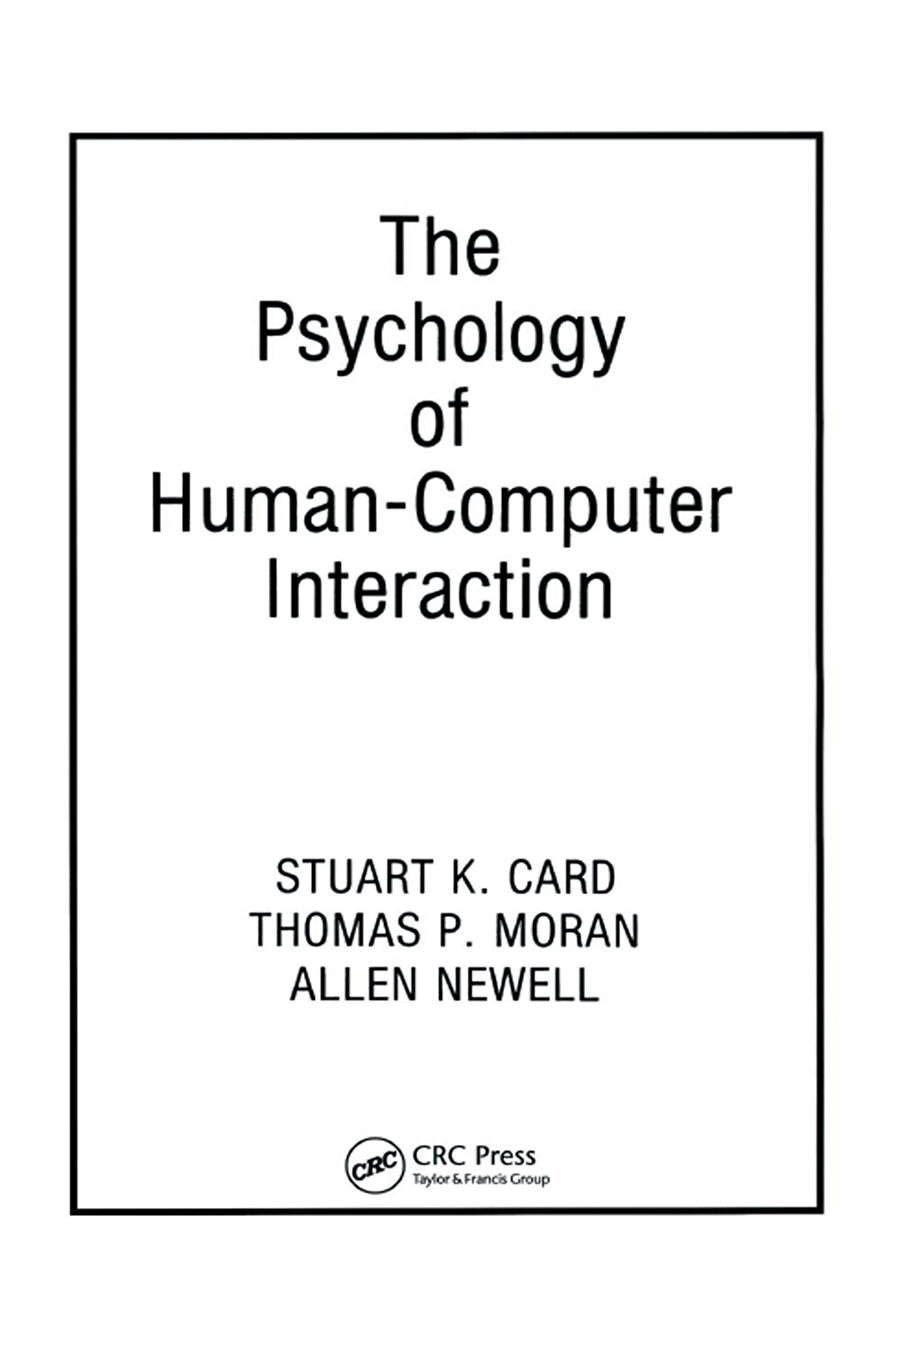 The Psychology of Human Computer Interaction.